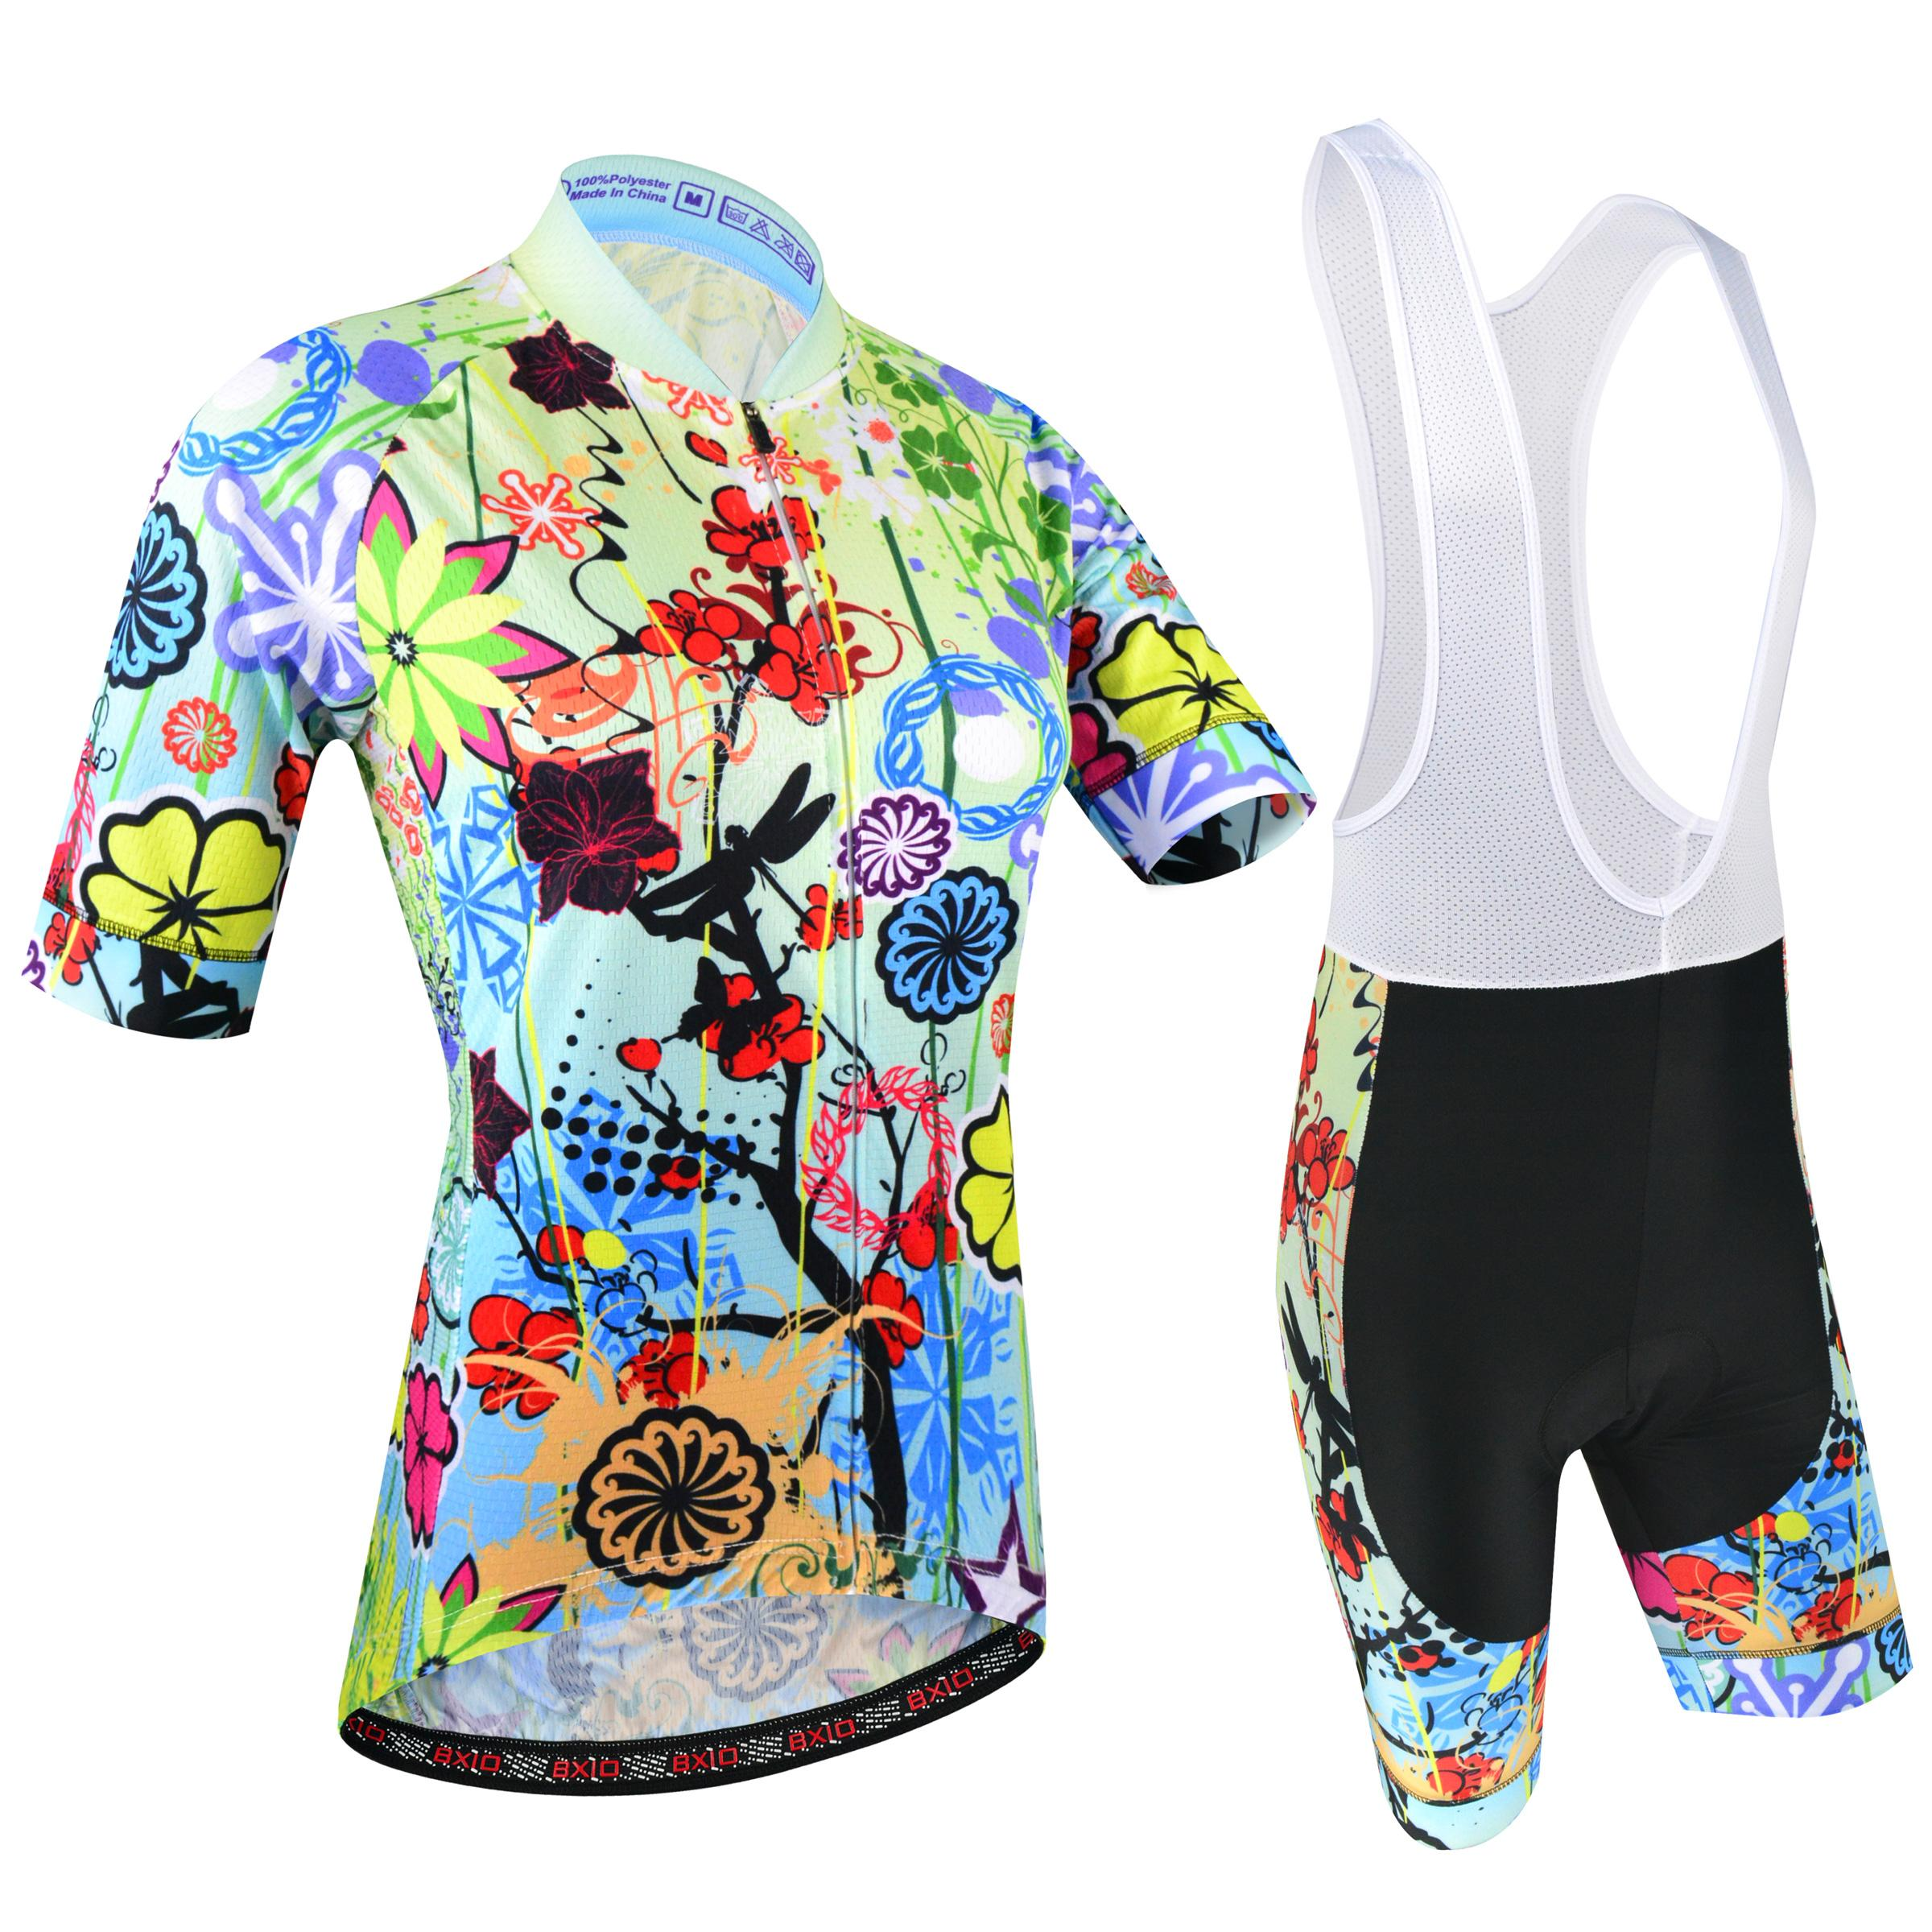 f7533156442 2018 BXIO Brand Summer Breathable Cycling Jersey Set Women Flower Style Cycling  Clothing Ropa Ciclismo Can Be Mix Size Bikes Clothes BX 187 Bicycle Gear ...